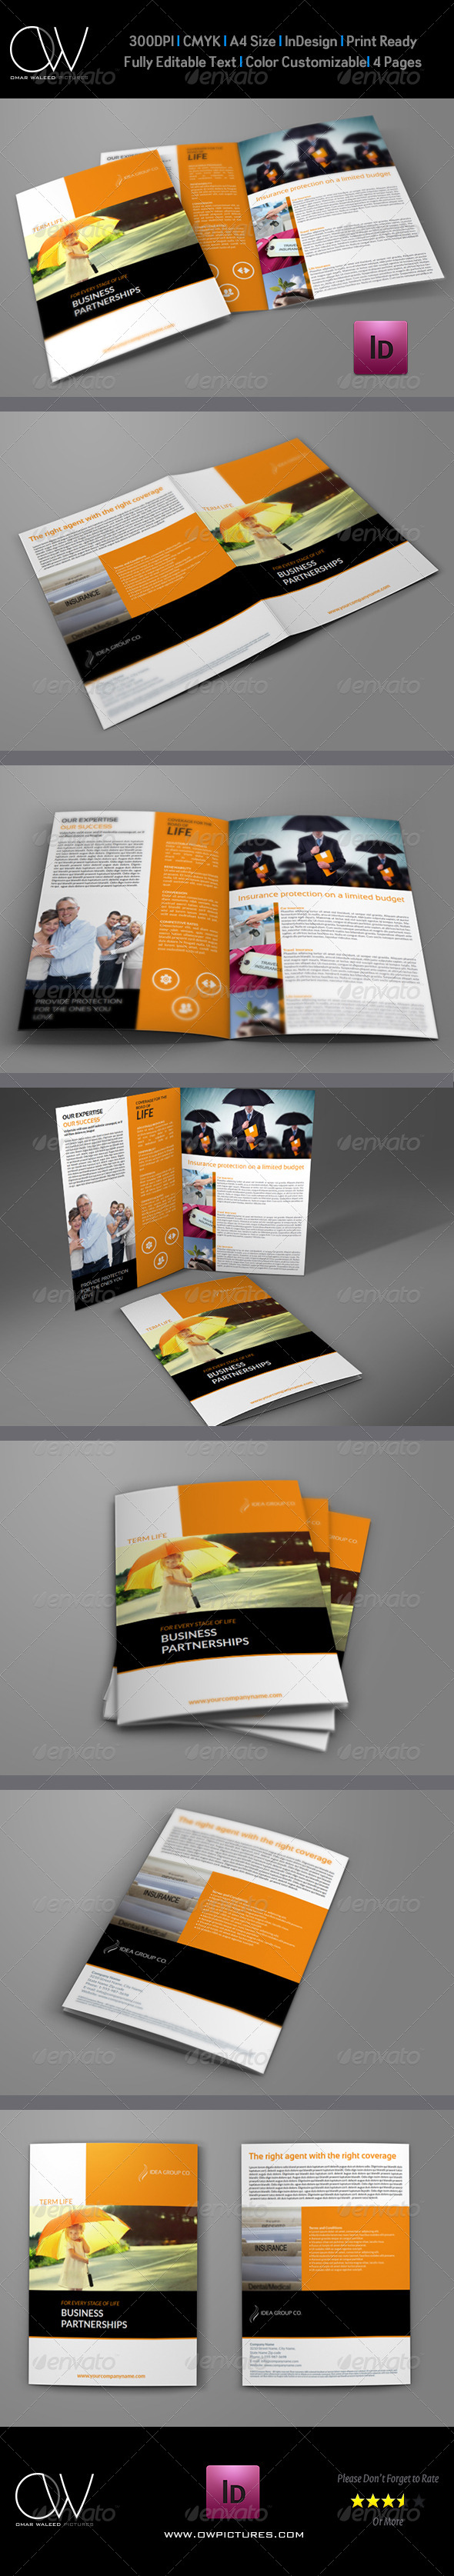 Company Brochure Insurance Bi-Fold Design Template